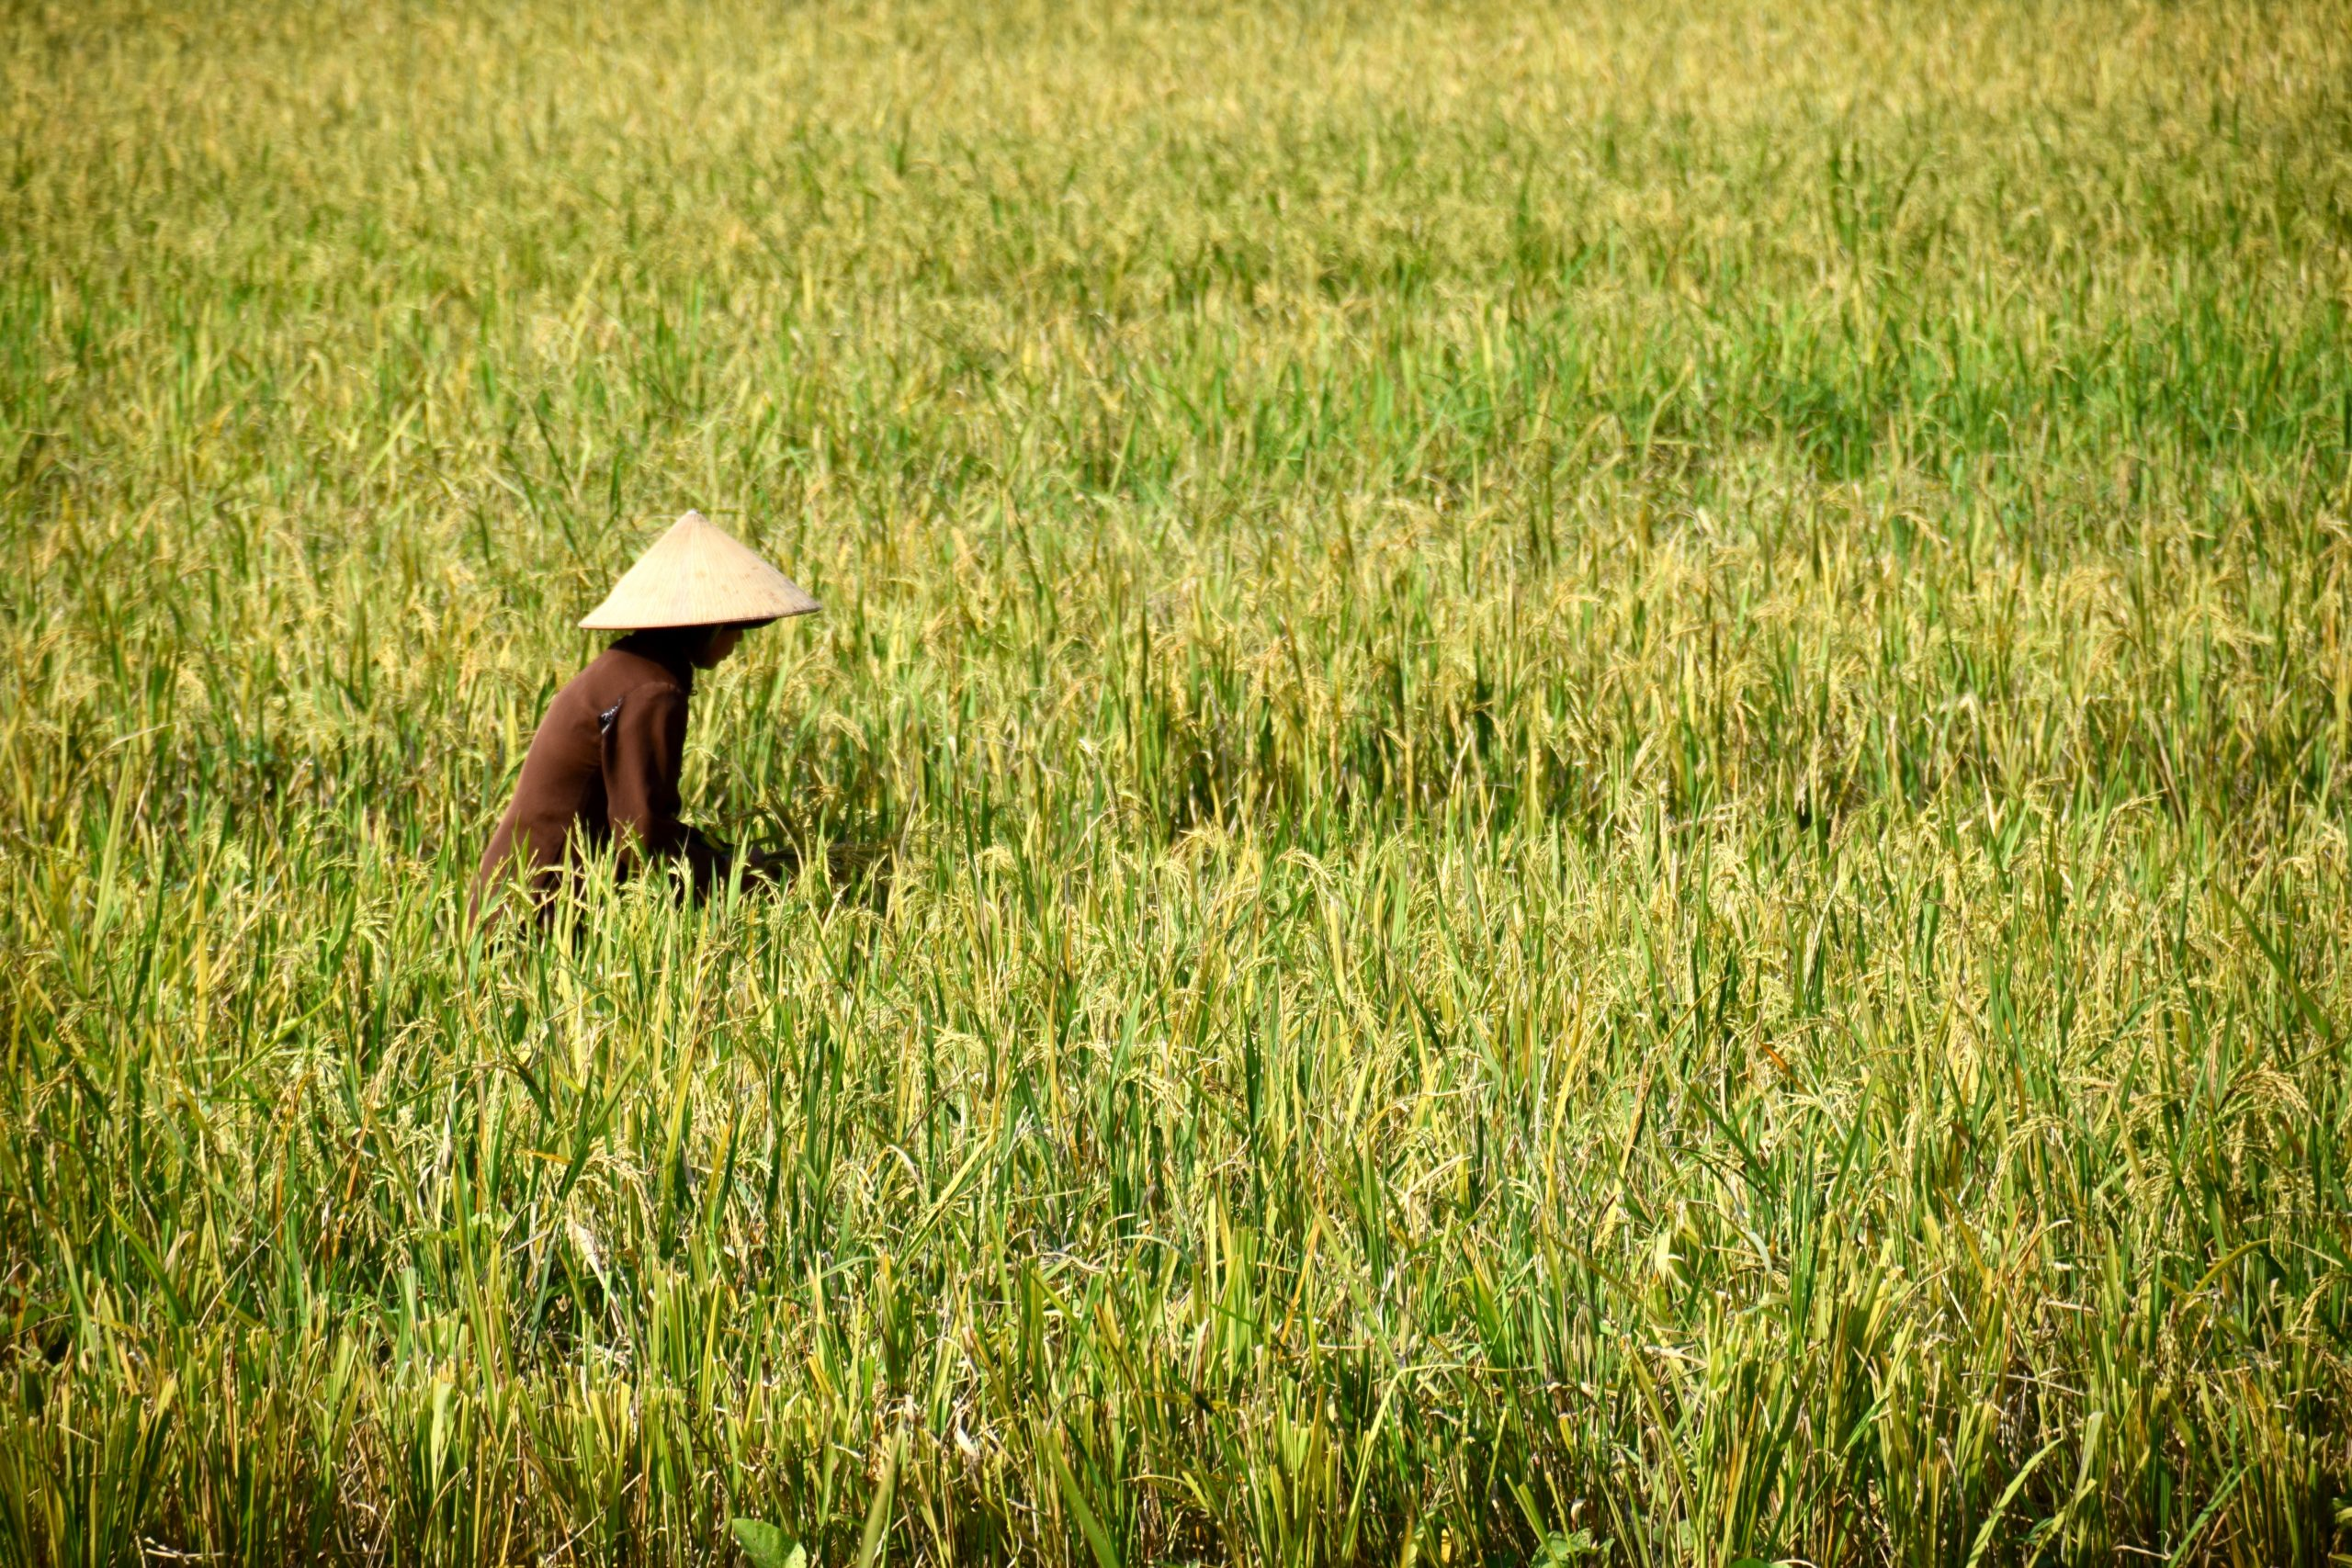 woman working in rice fields wearing traditional sun hat native to the areas surrounding Hanoi, Vietname